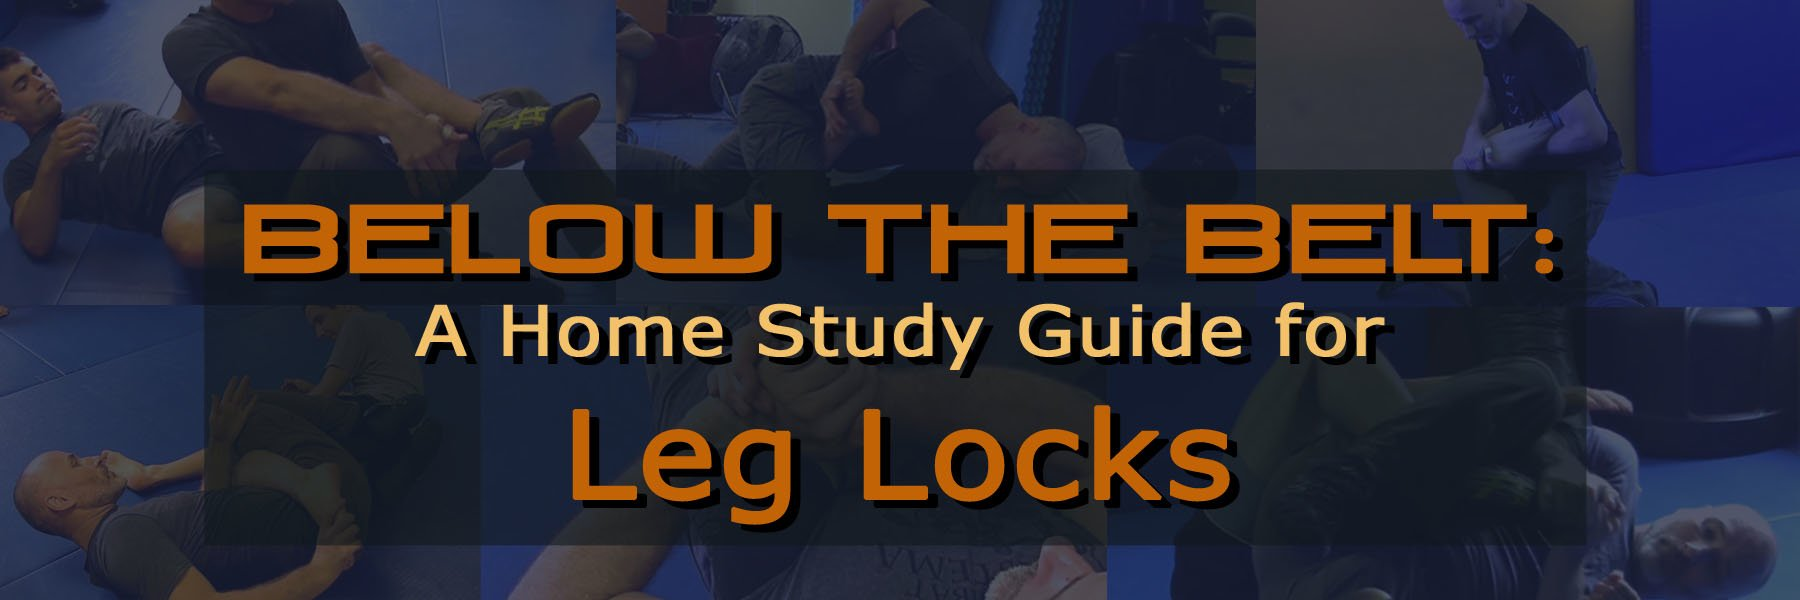 Below The Belt: A Home Study Guide For Leg Locks by Kevin Secours